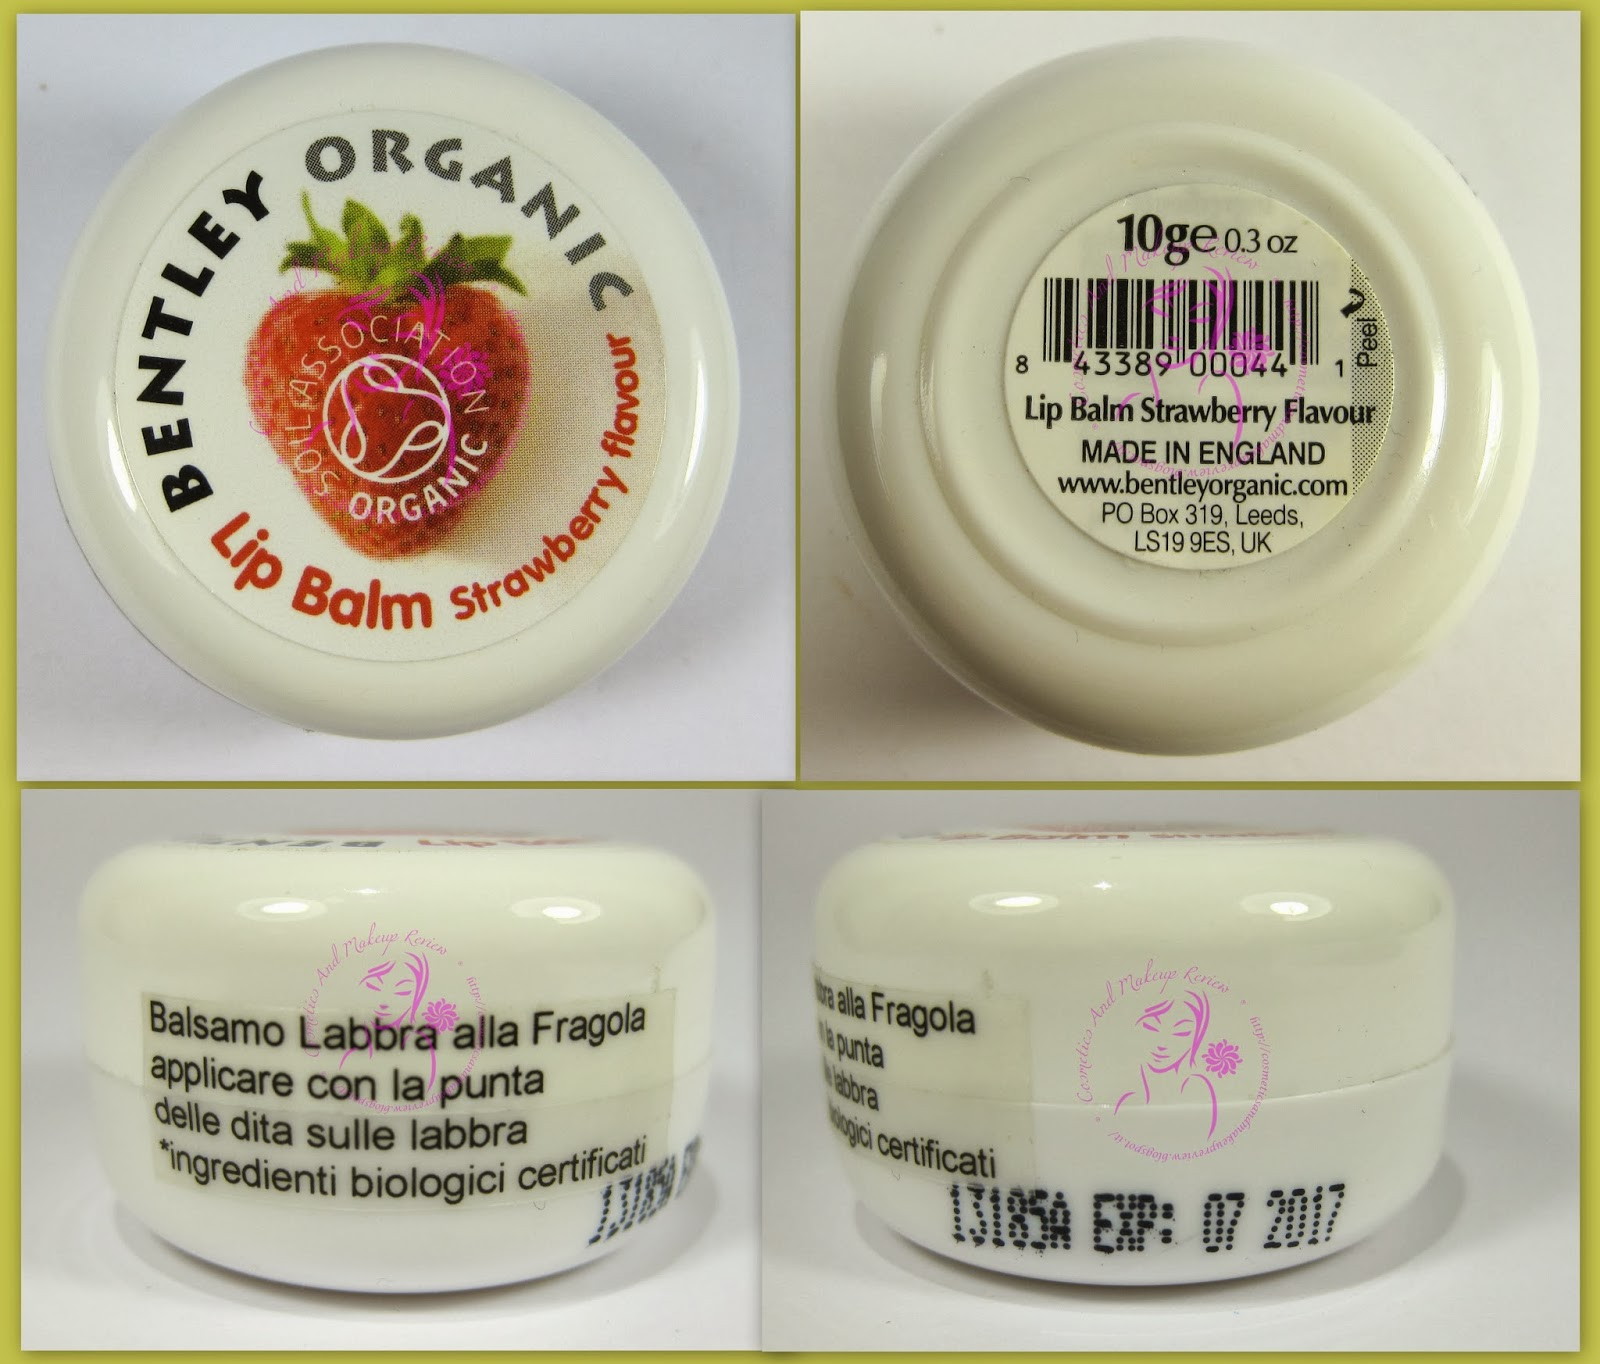 Bentley Organic - Lip Balm Strawberry flavour - packaging a 360°